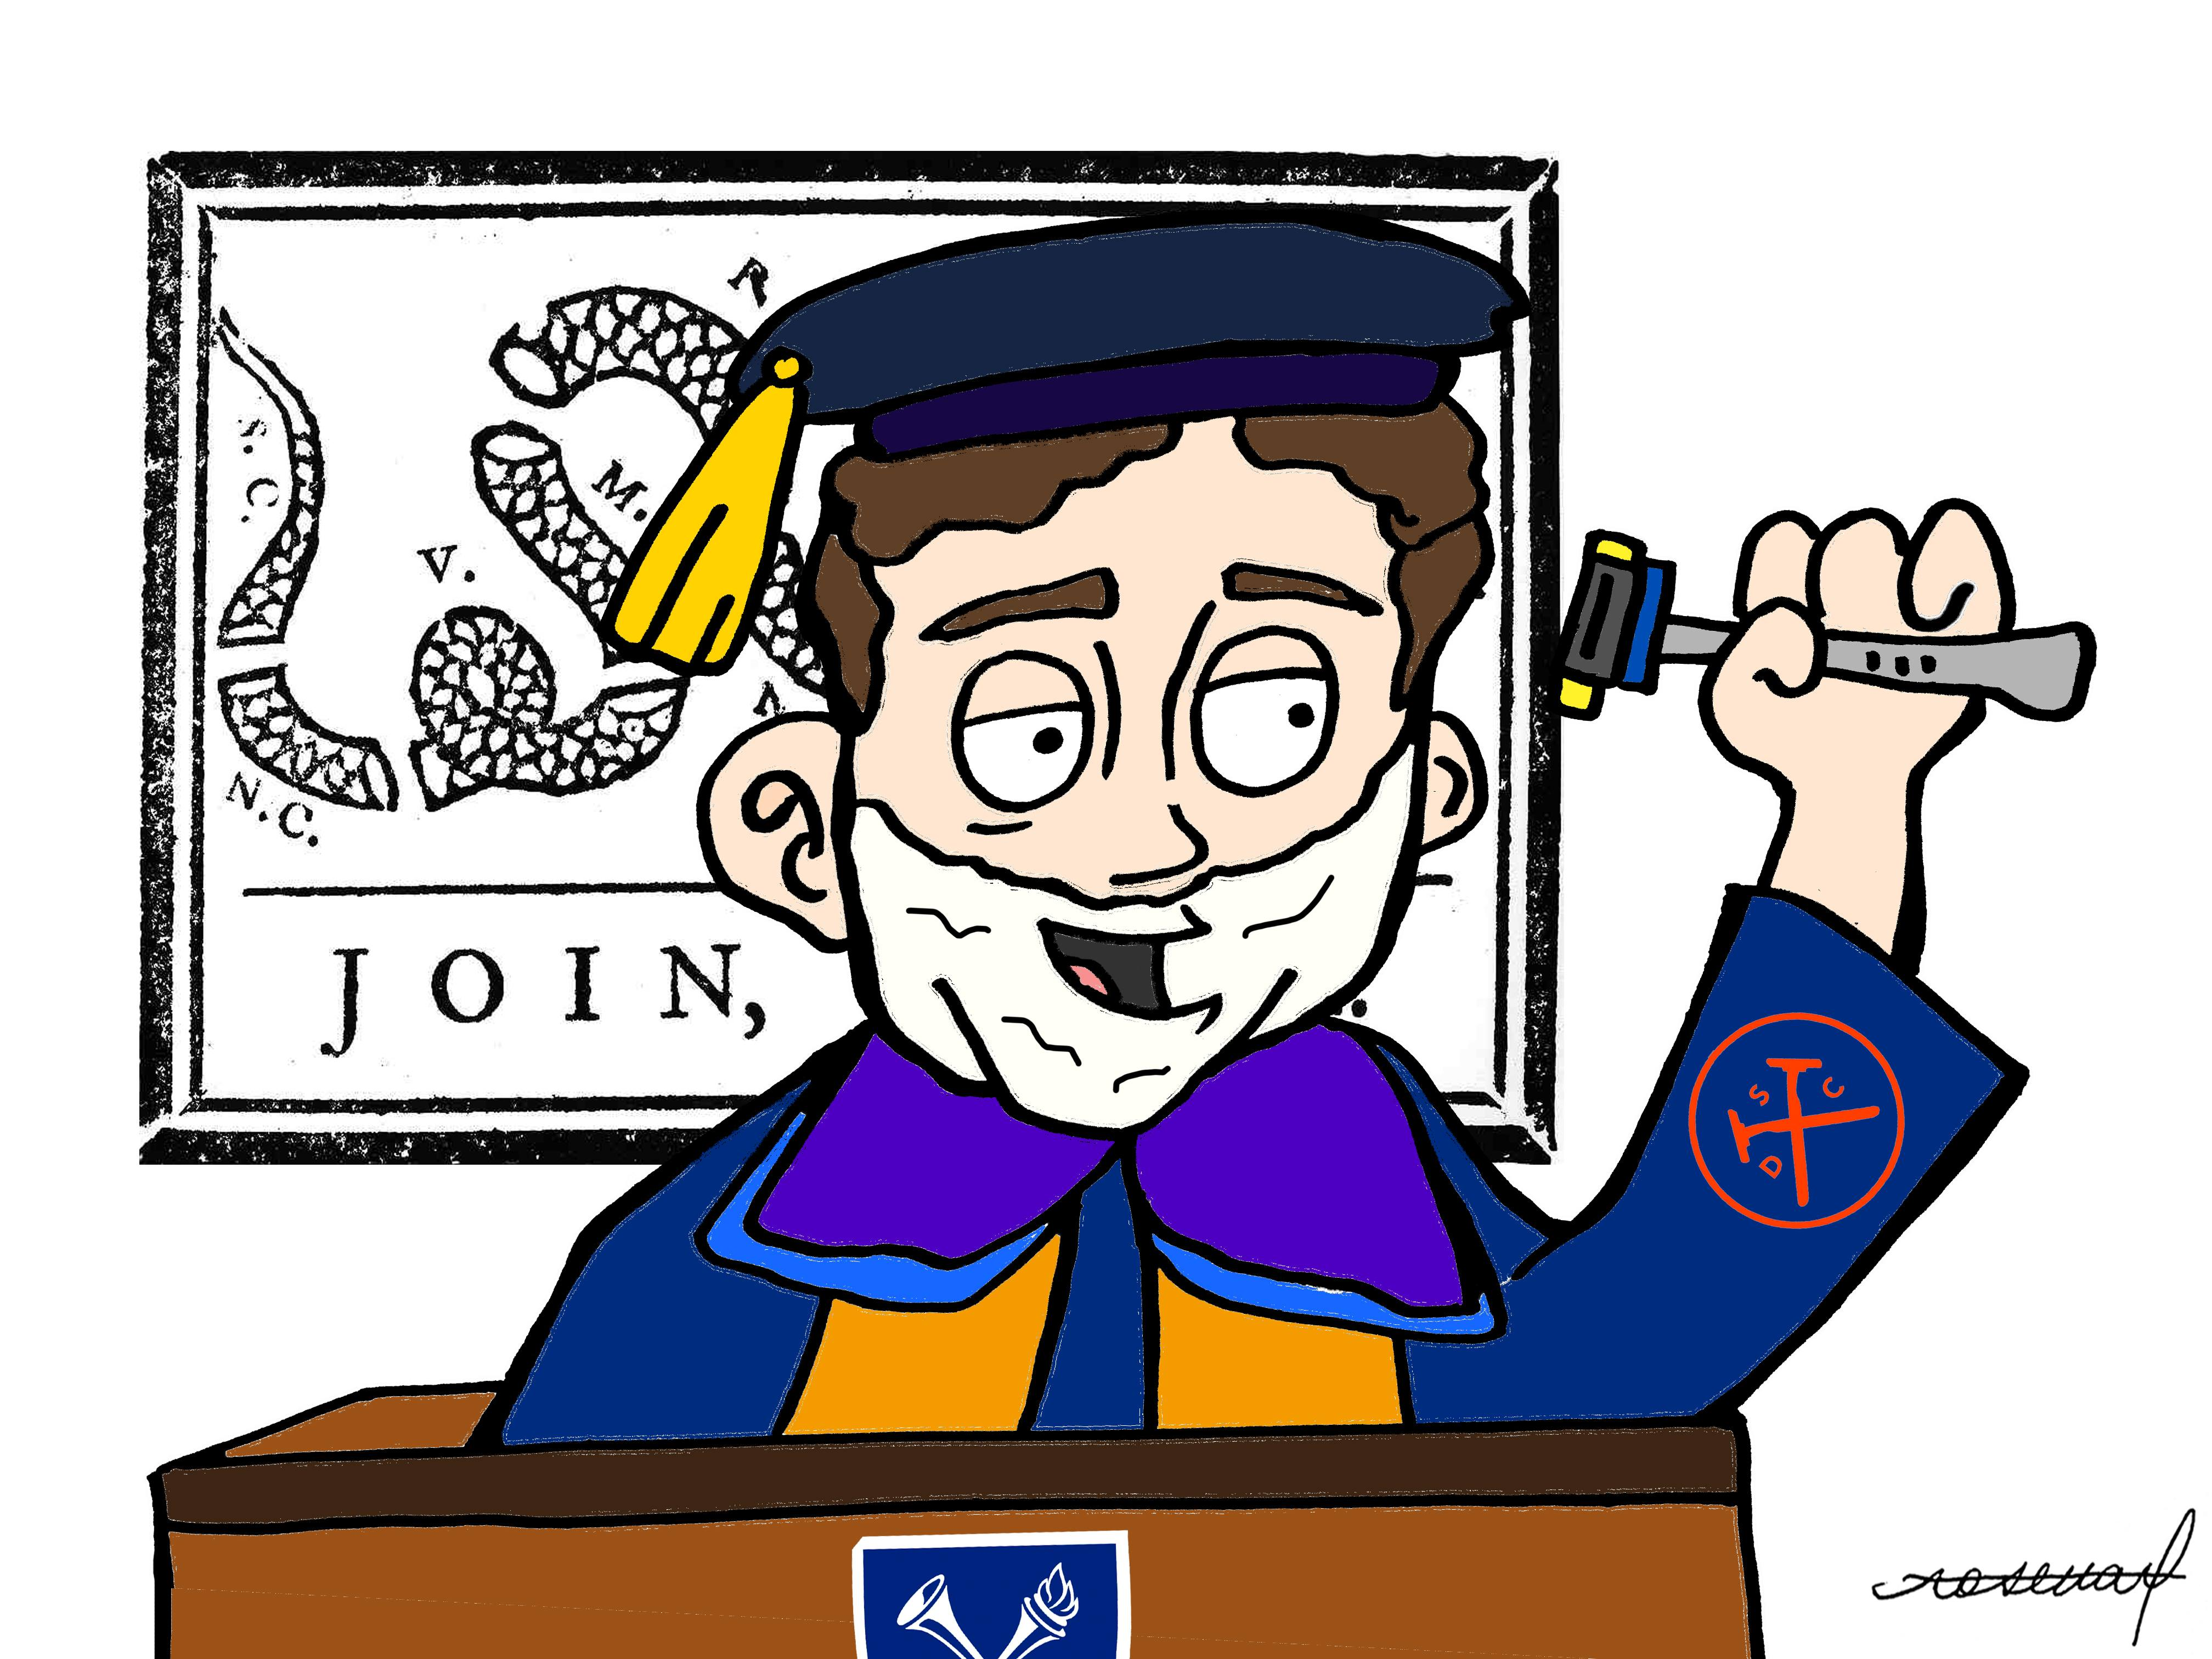 Cartoon: Dollar Shave Founder Chosen as Commencement Speaker